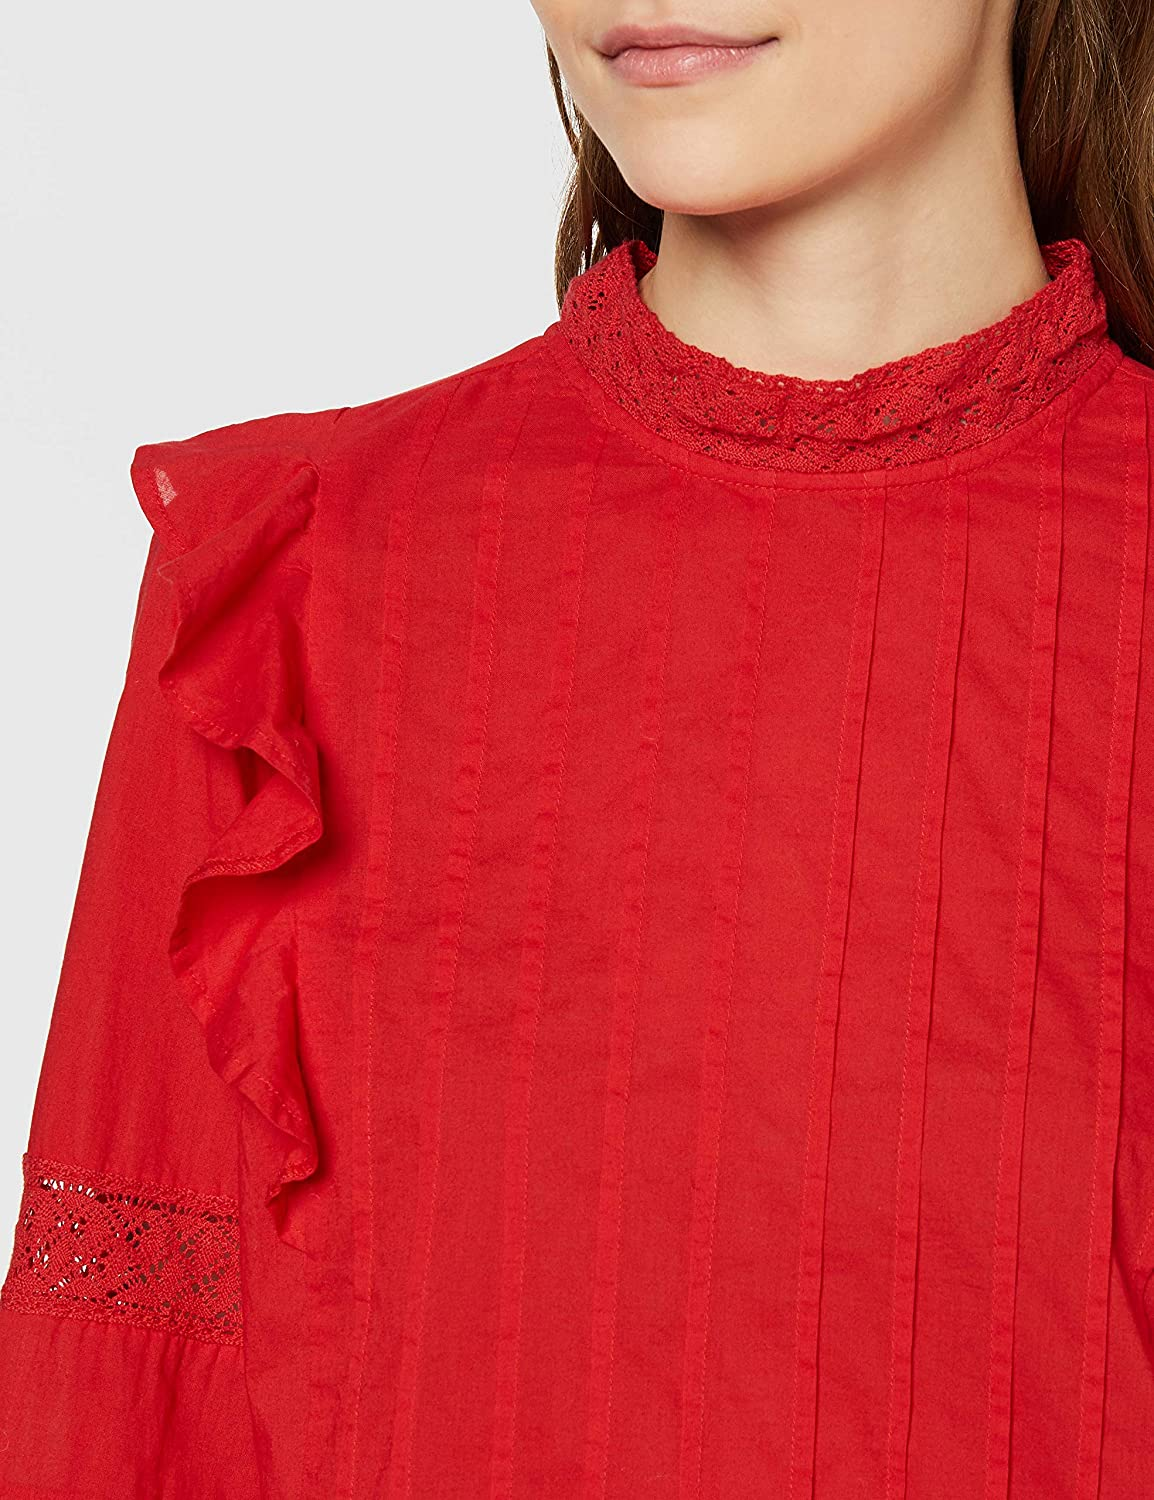 find Top in Pizzo Donna Marchio